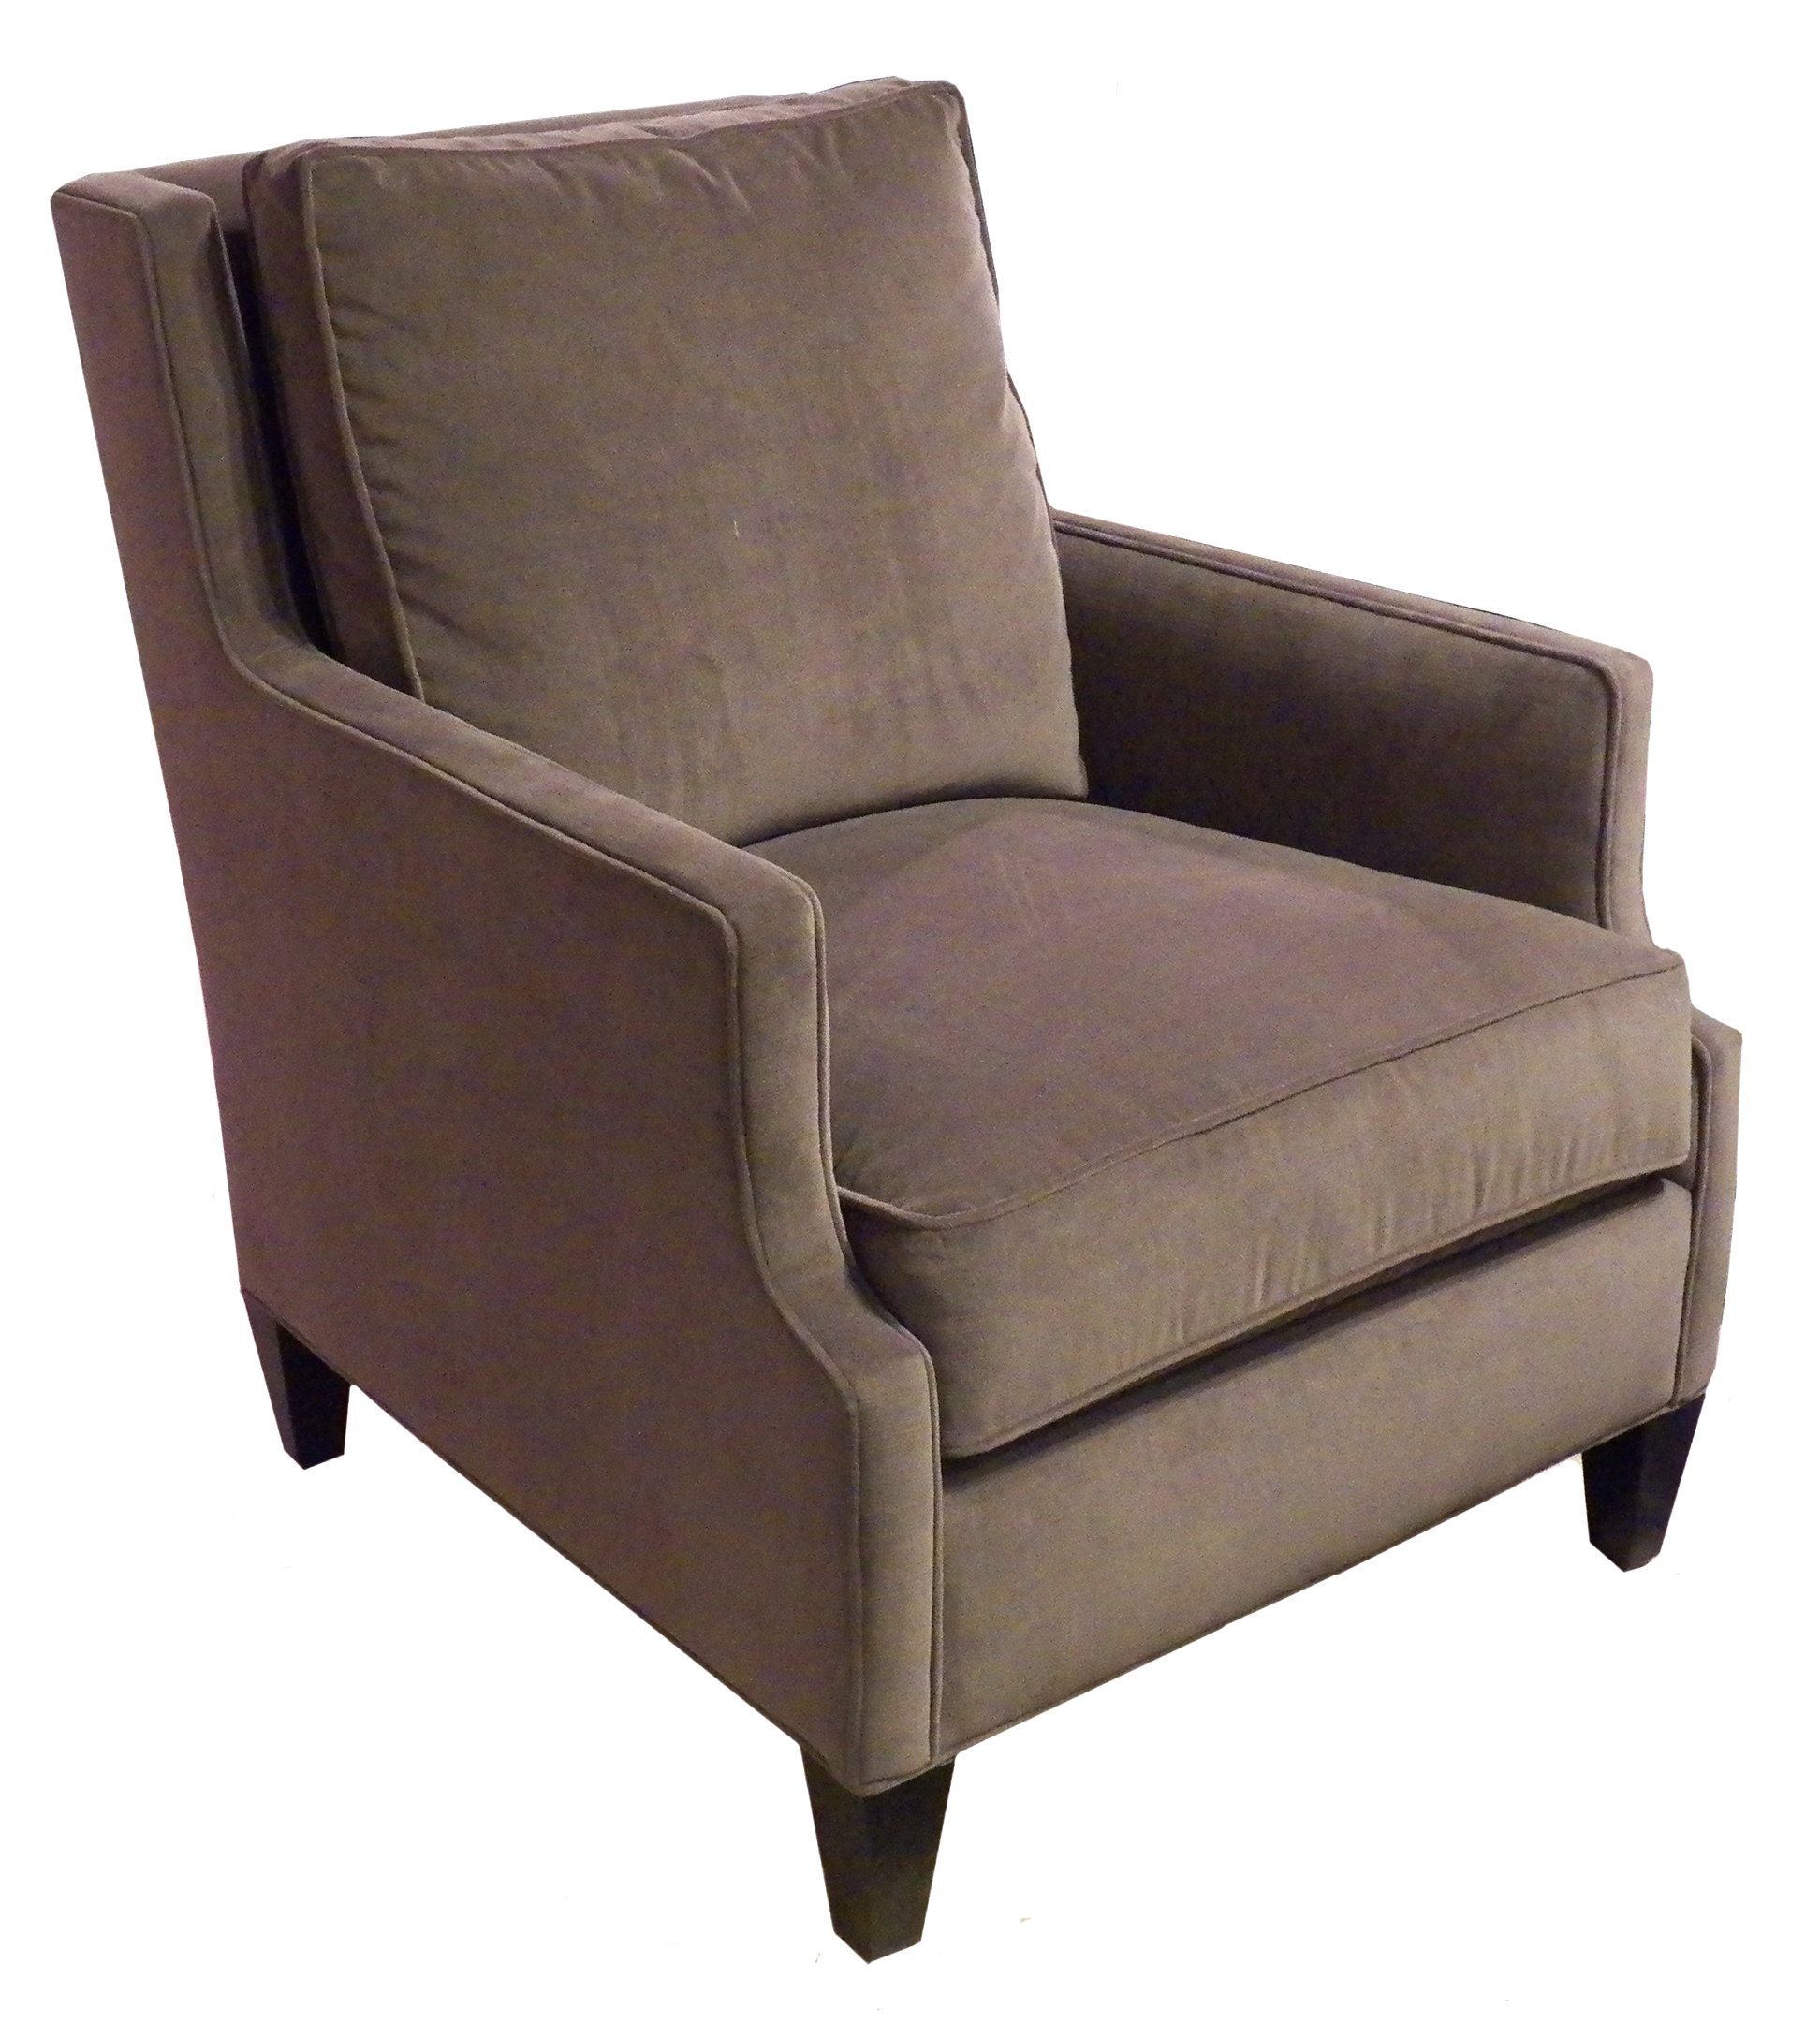 drexel heritage chairs bath for elderly lounge chair 0215669 grindstaff s larger image